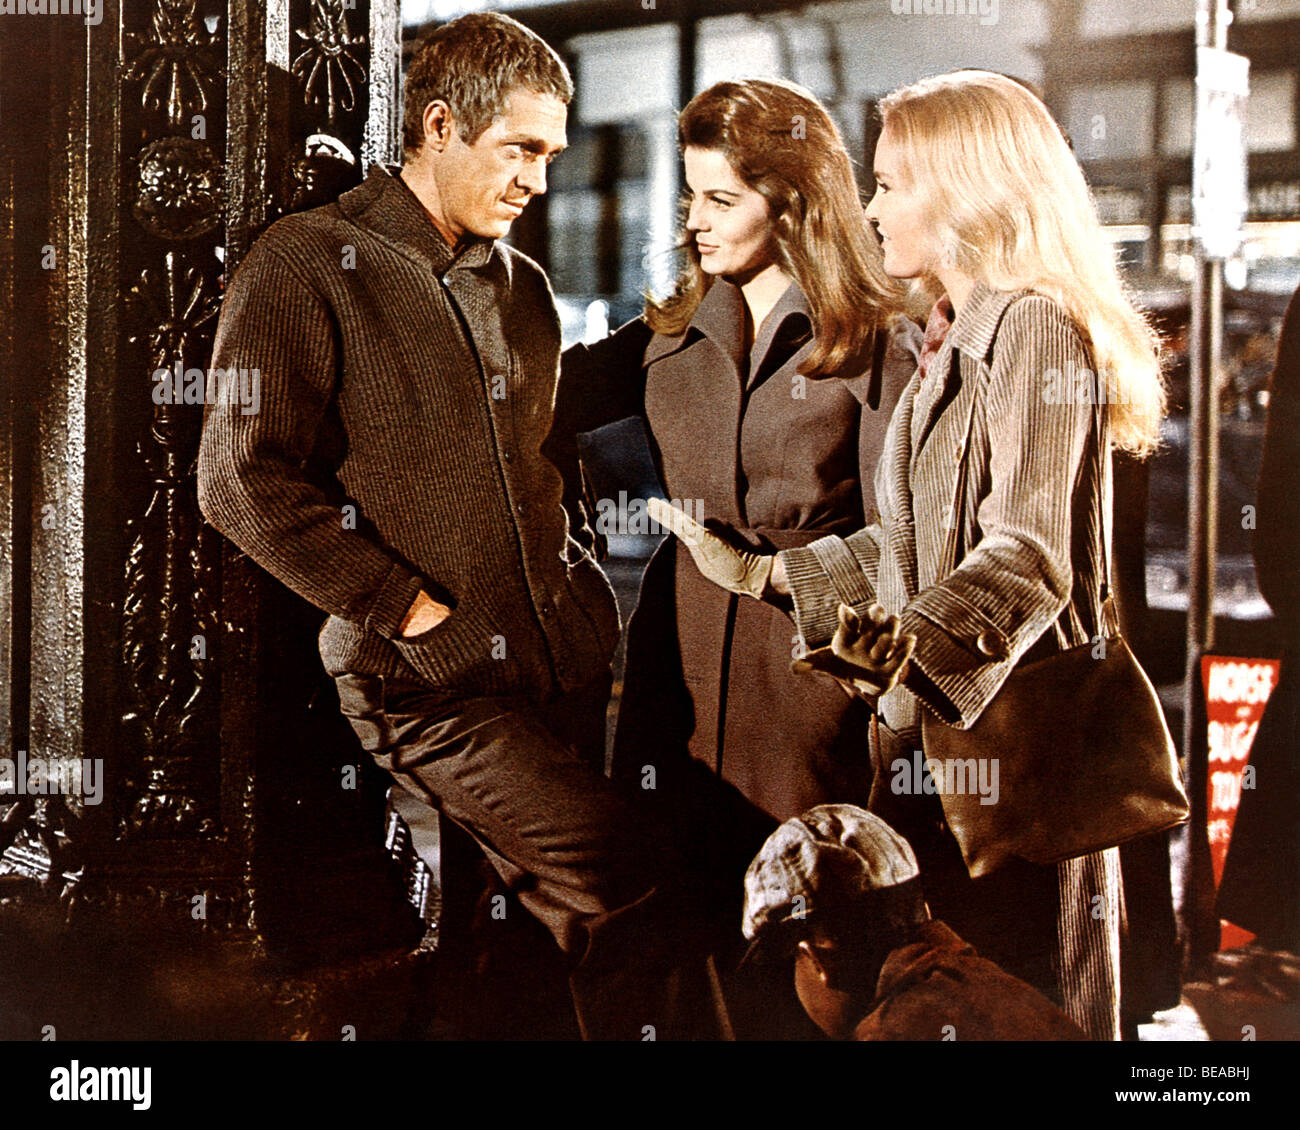 CINCINNATI KID  - 1965 MGM film with from left: Steve McQueen, Ann-Margret and Tuesday Weld - Stock Image